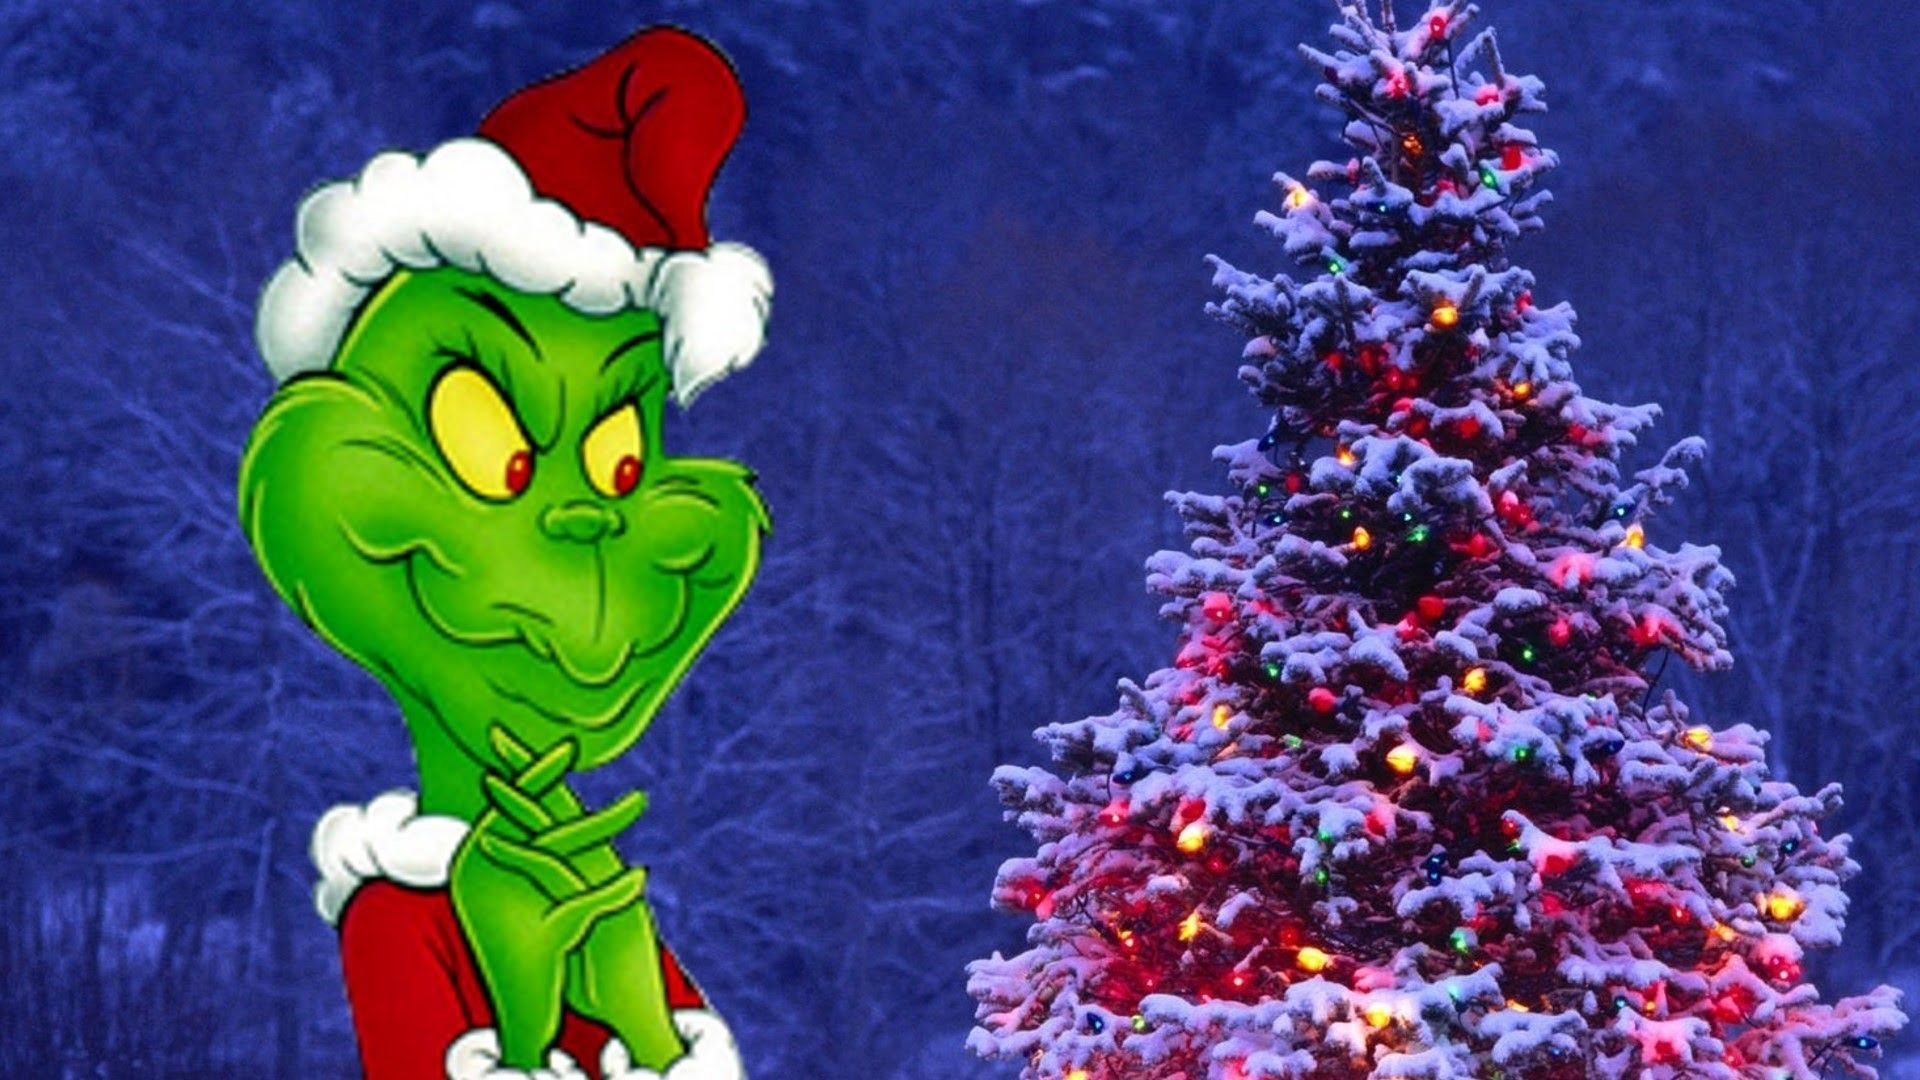 How the Grinch Stole Christmas Wallpapers   Top How the 1920x1080